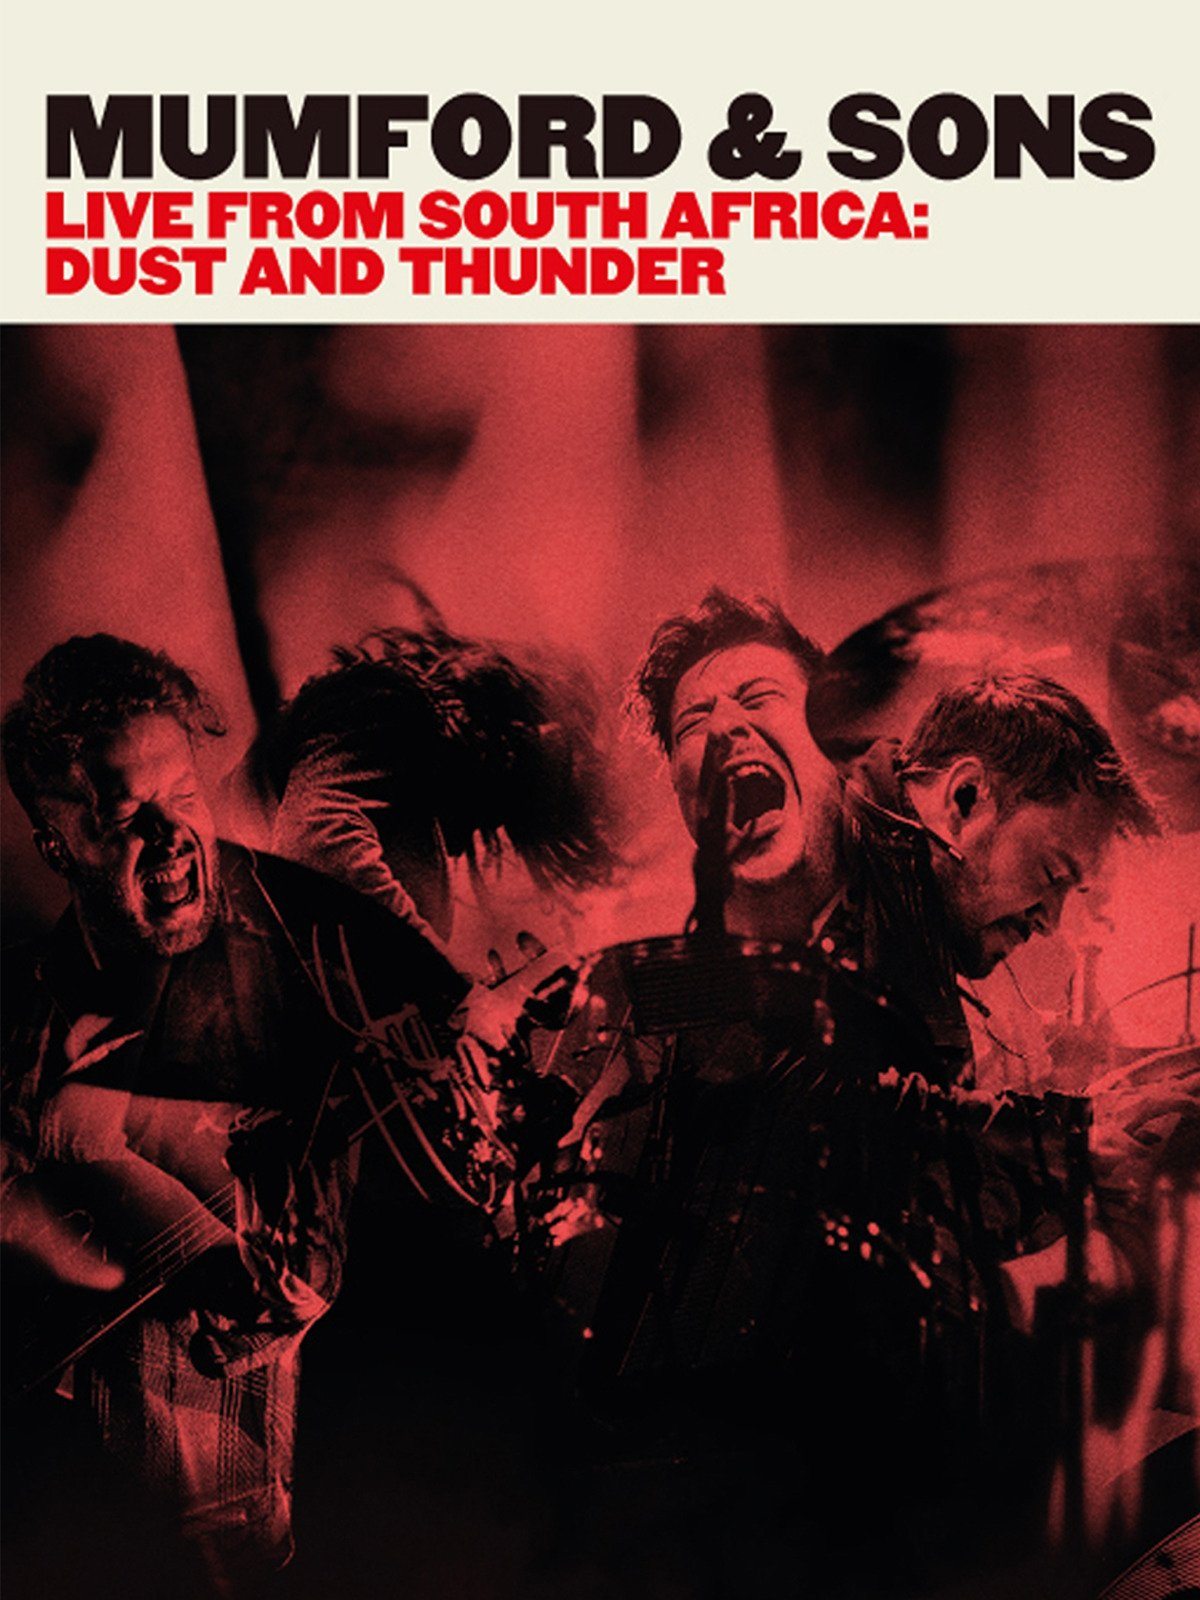 Mumford & Sons Live From South Africa: Dust & Thunder